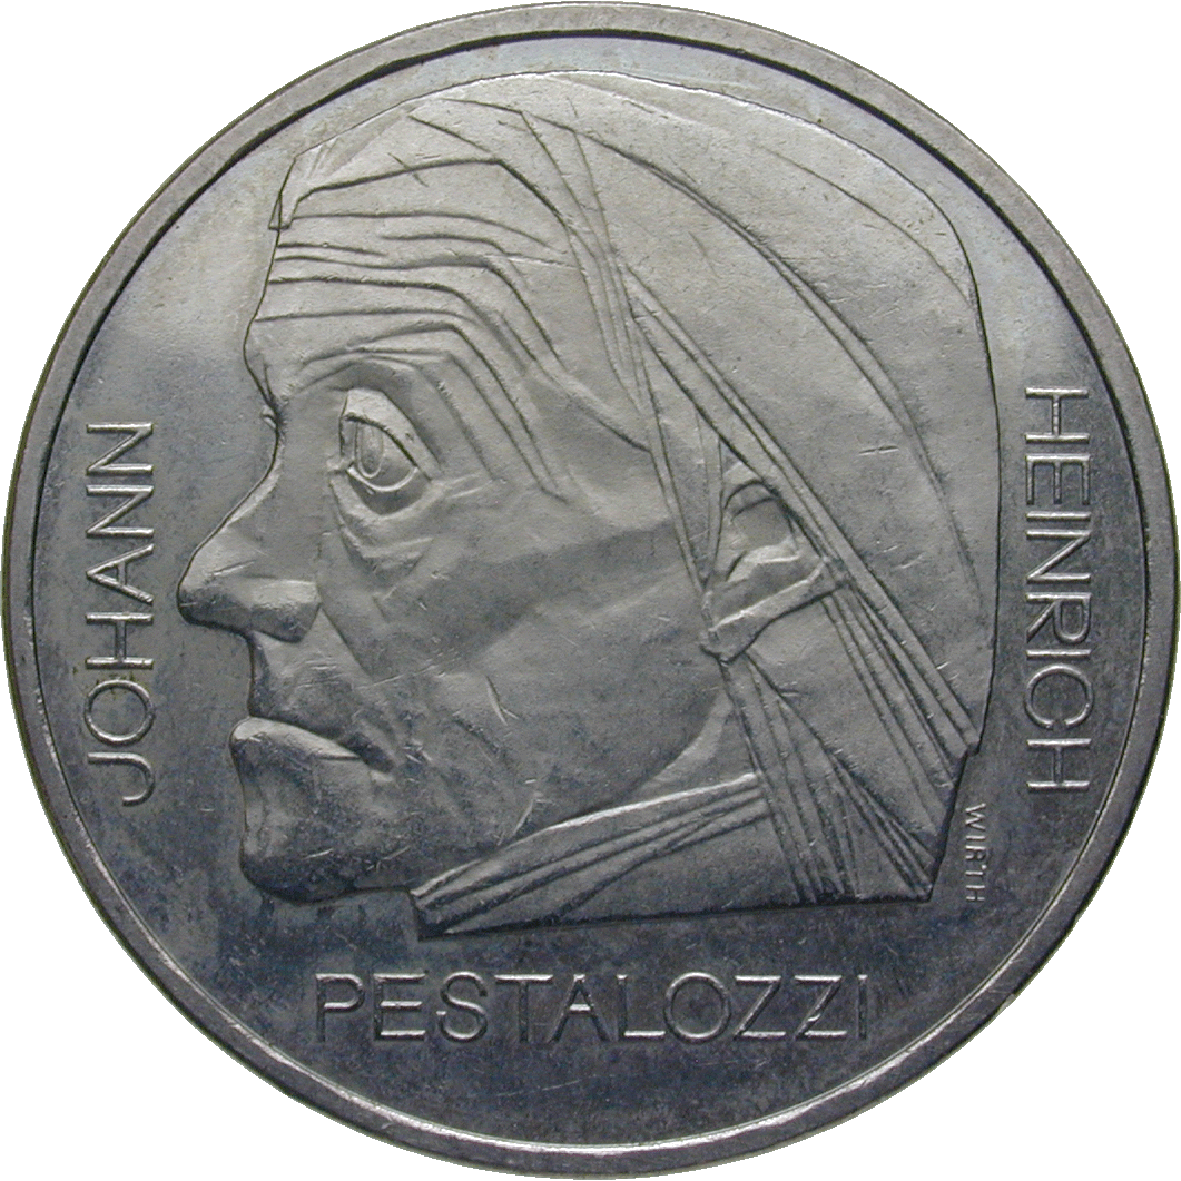 Swiss Confederation, 5 Franks 1977 (obverse)